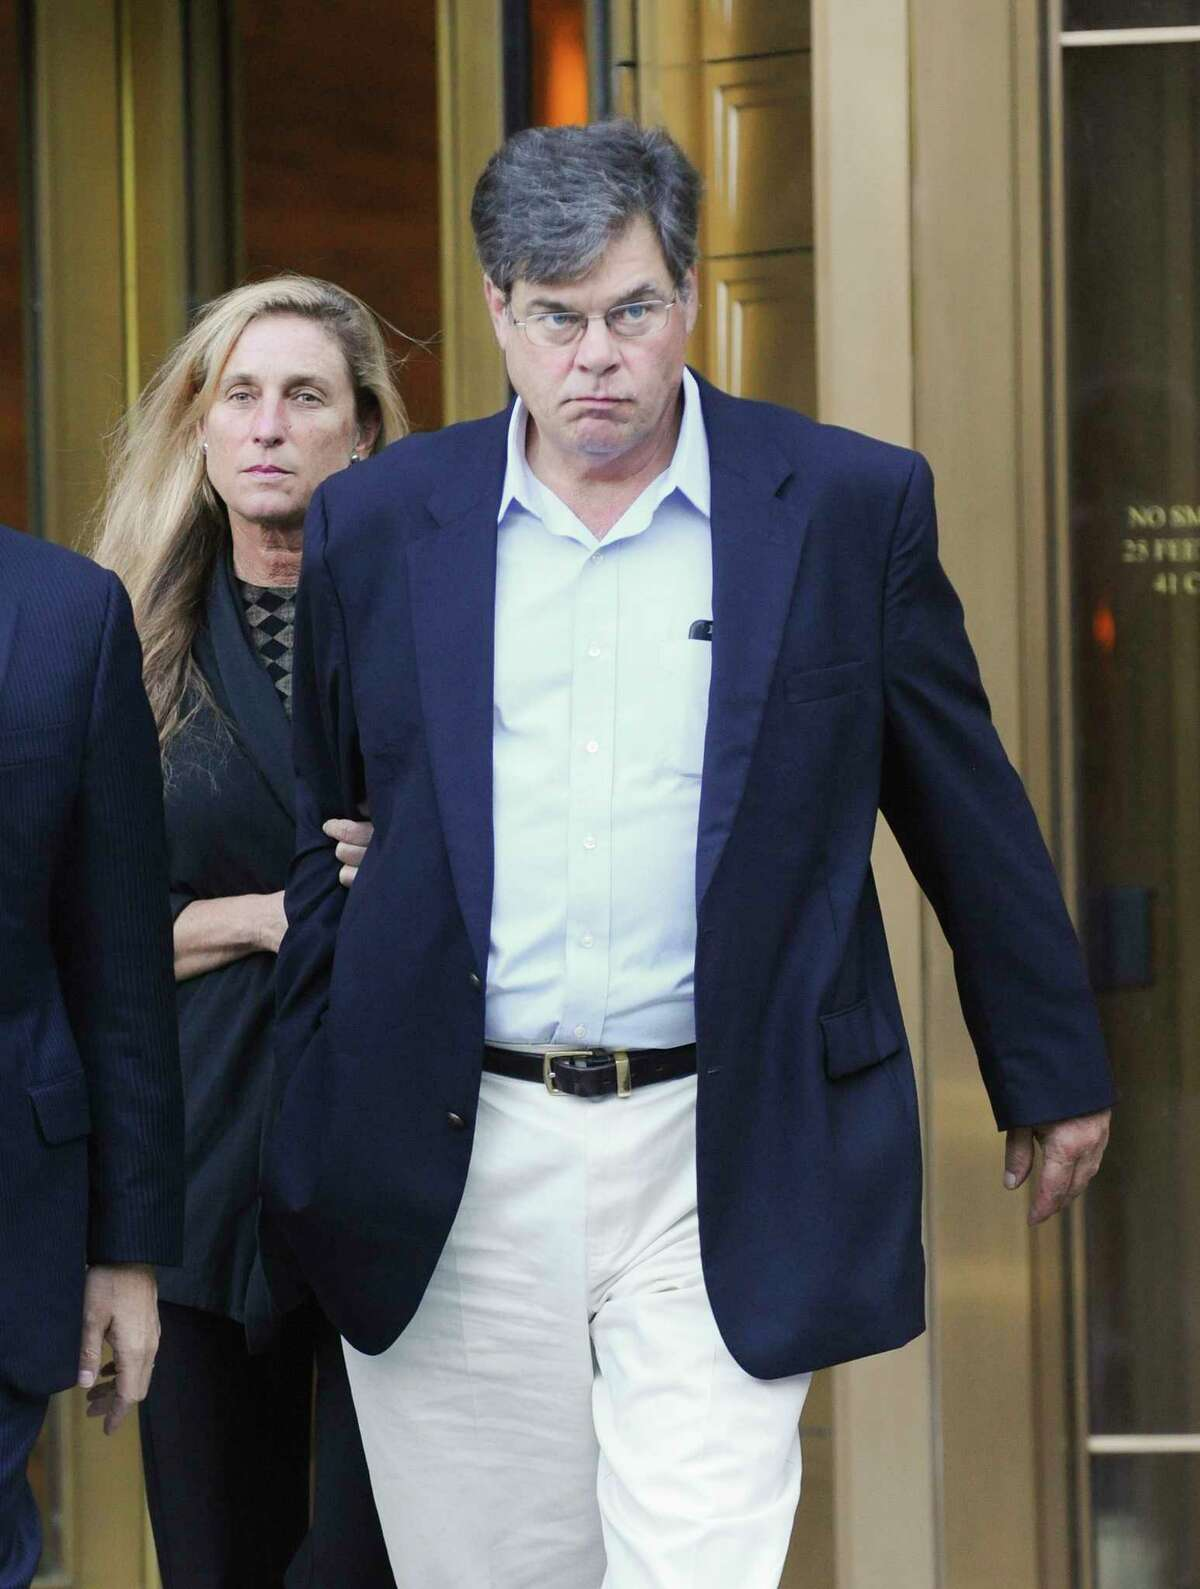 Peter Galbraith Kelly Jr., a chief lobbyist for a power company that arranged to donate a private jet to fly Andrew Cuomo during his campaign for New York governor, leaves Federal District Court in New York, Sept. 22, 2016. Cuomo makes only cameo appearances in a federal complaint announced on Thursday that outlines a corruption scheme involving an ally, a former close aide and donors of his. (Louis Lanzano/The New York Times) ORG XMIT: XNYT152